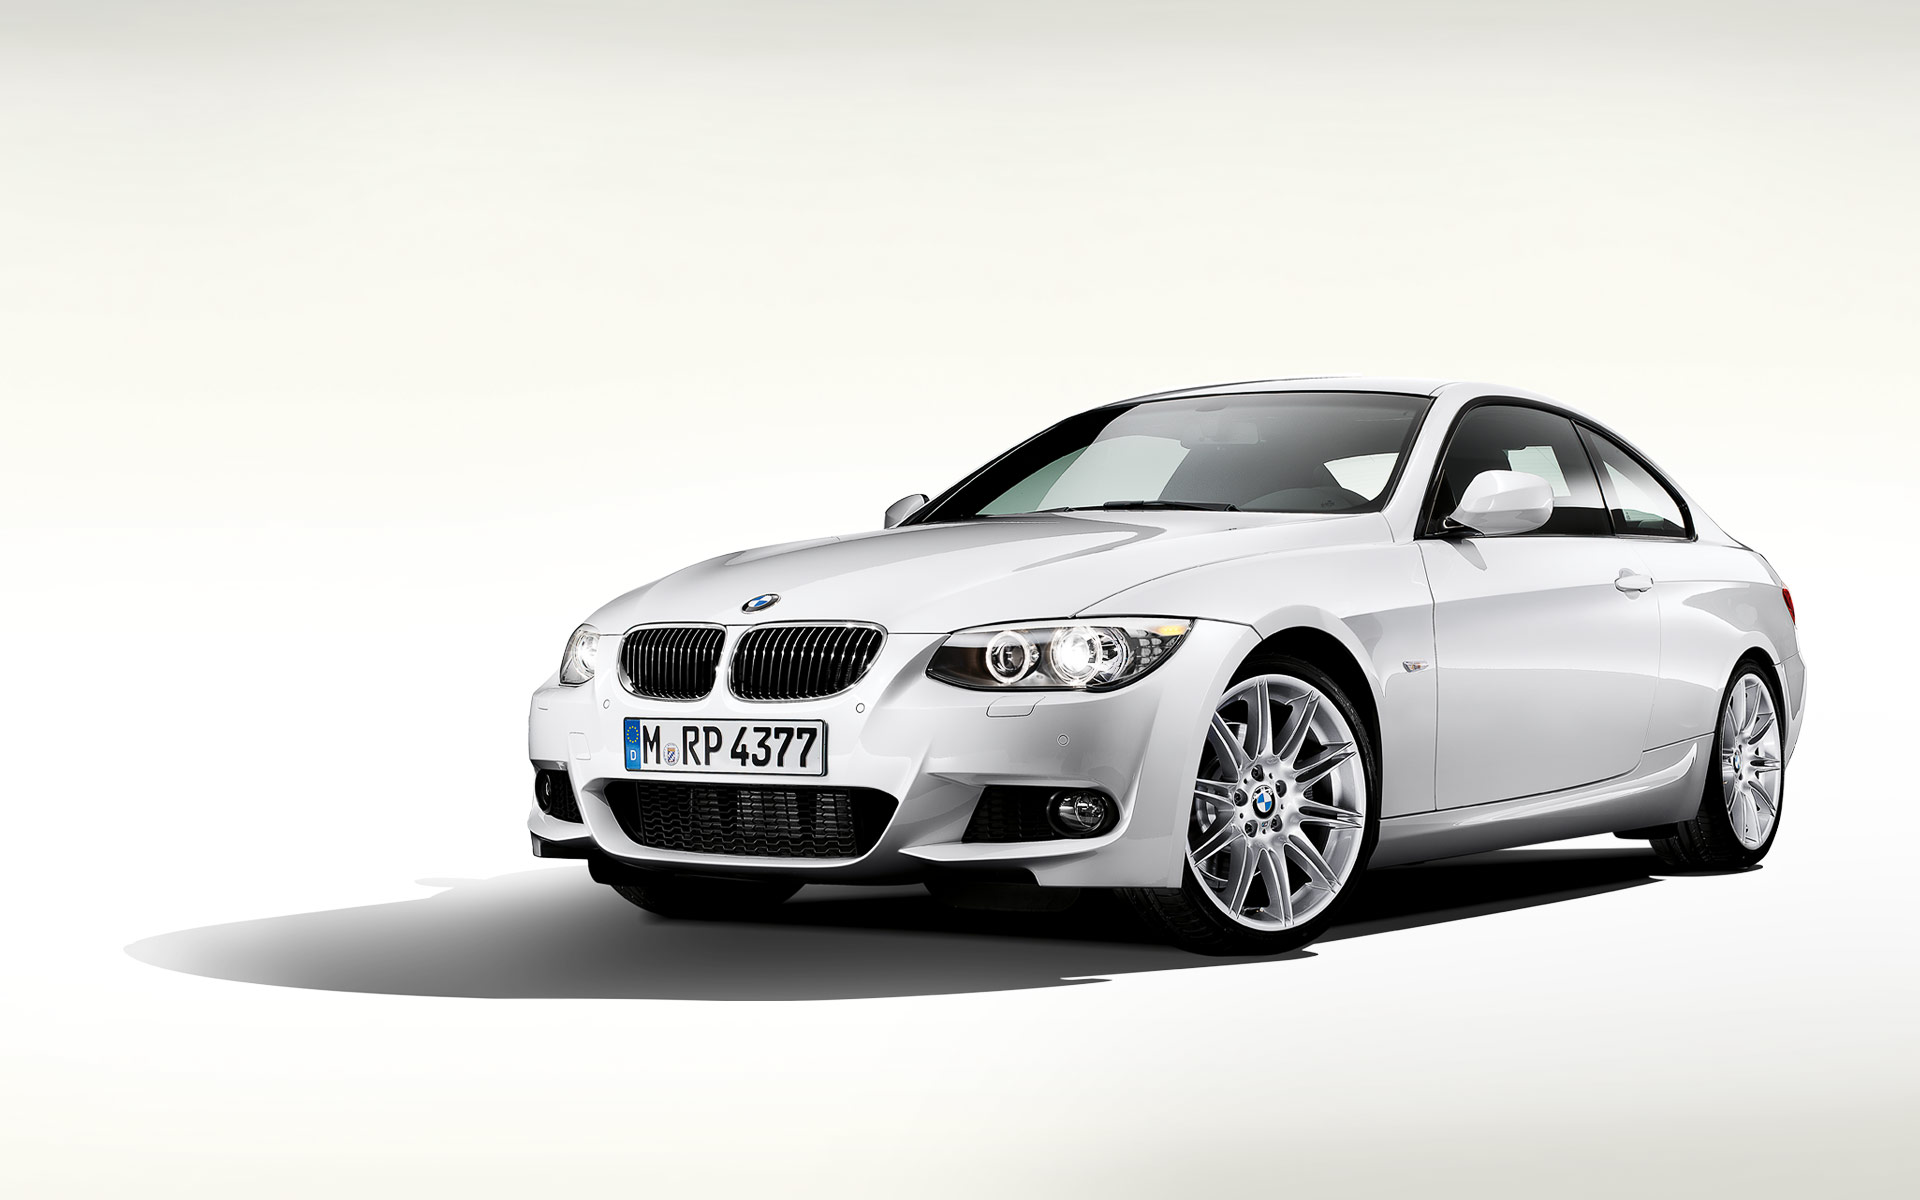 09_1920x1200_bmw_3series_coupe1